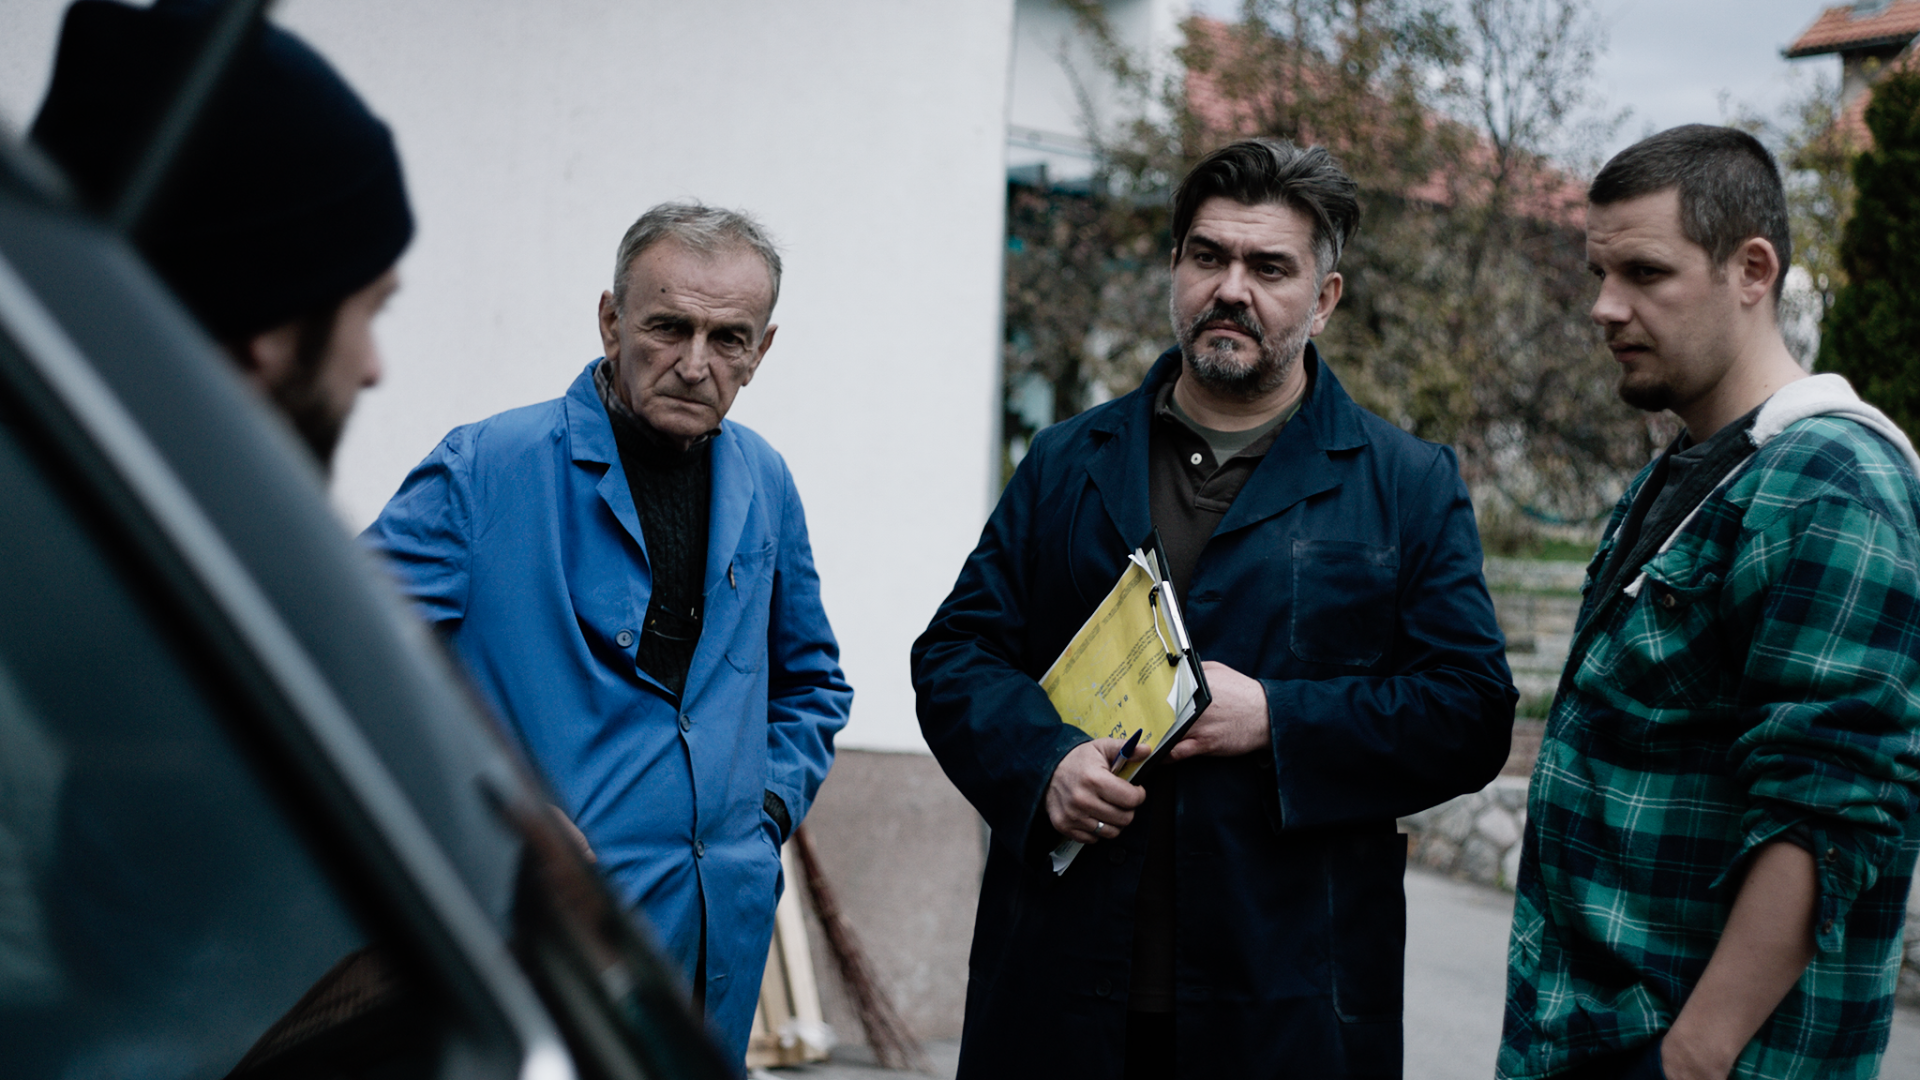 """IDENTITY DILEMMA"" AND ""A GOOD DAY'S WORK"" AT THE FESTIVAL OF SLOVENIAN FILM"